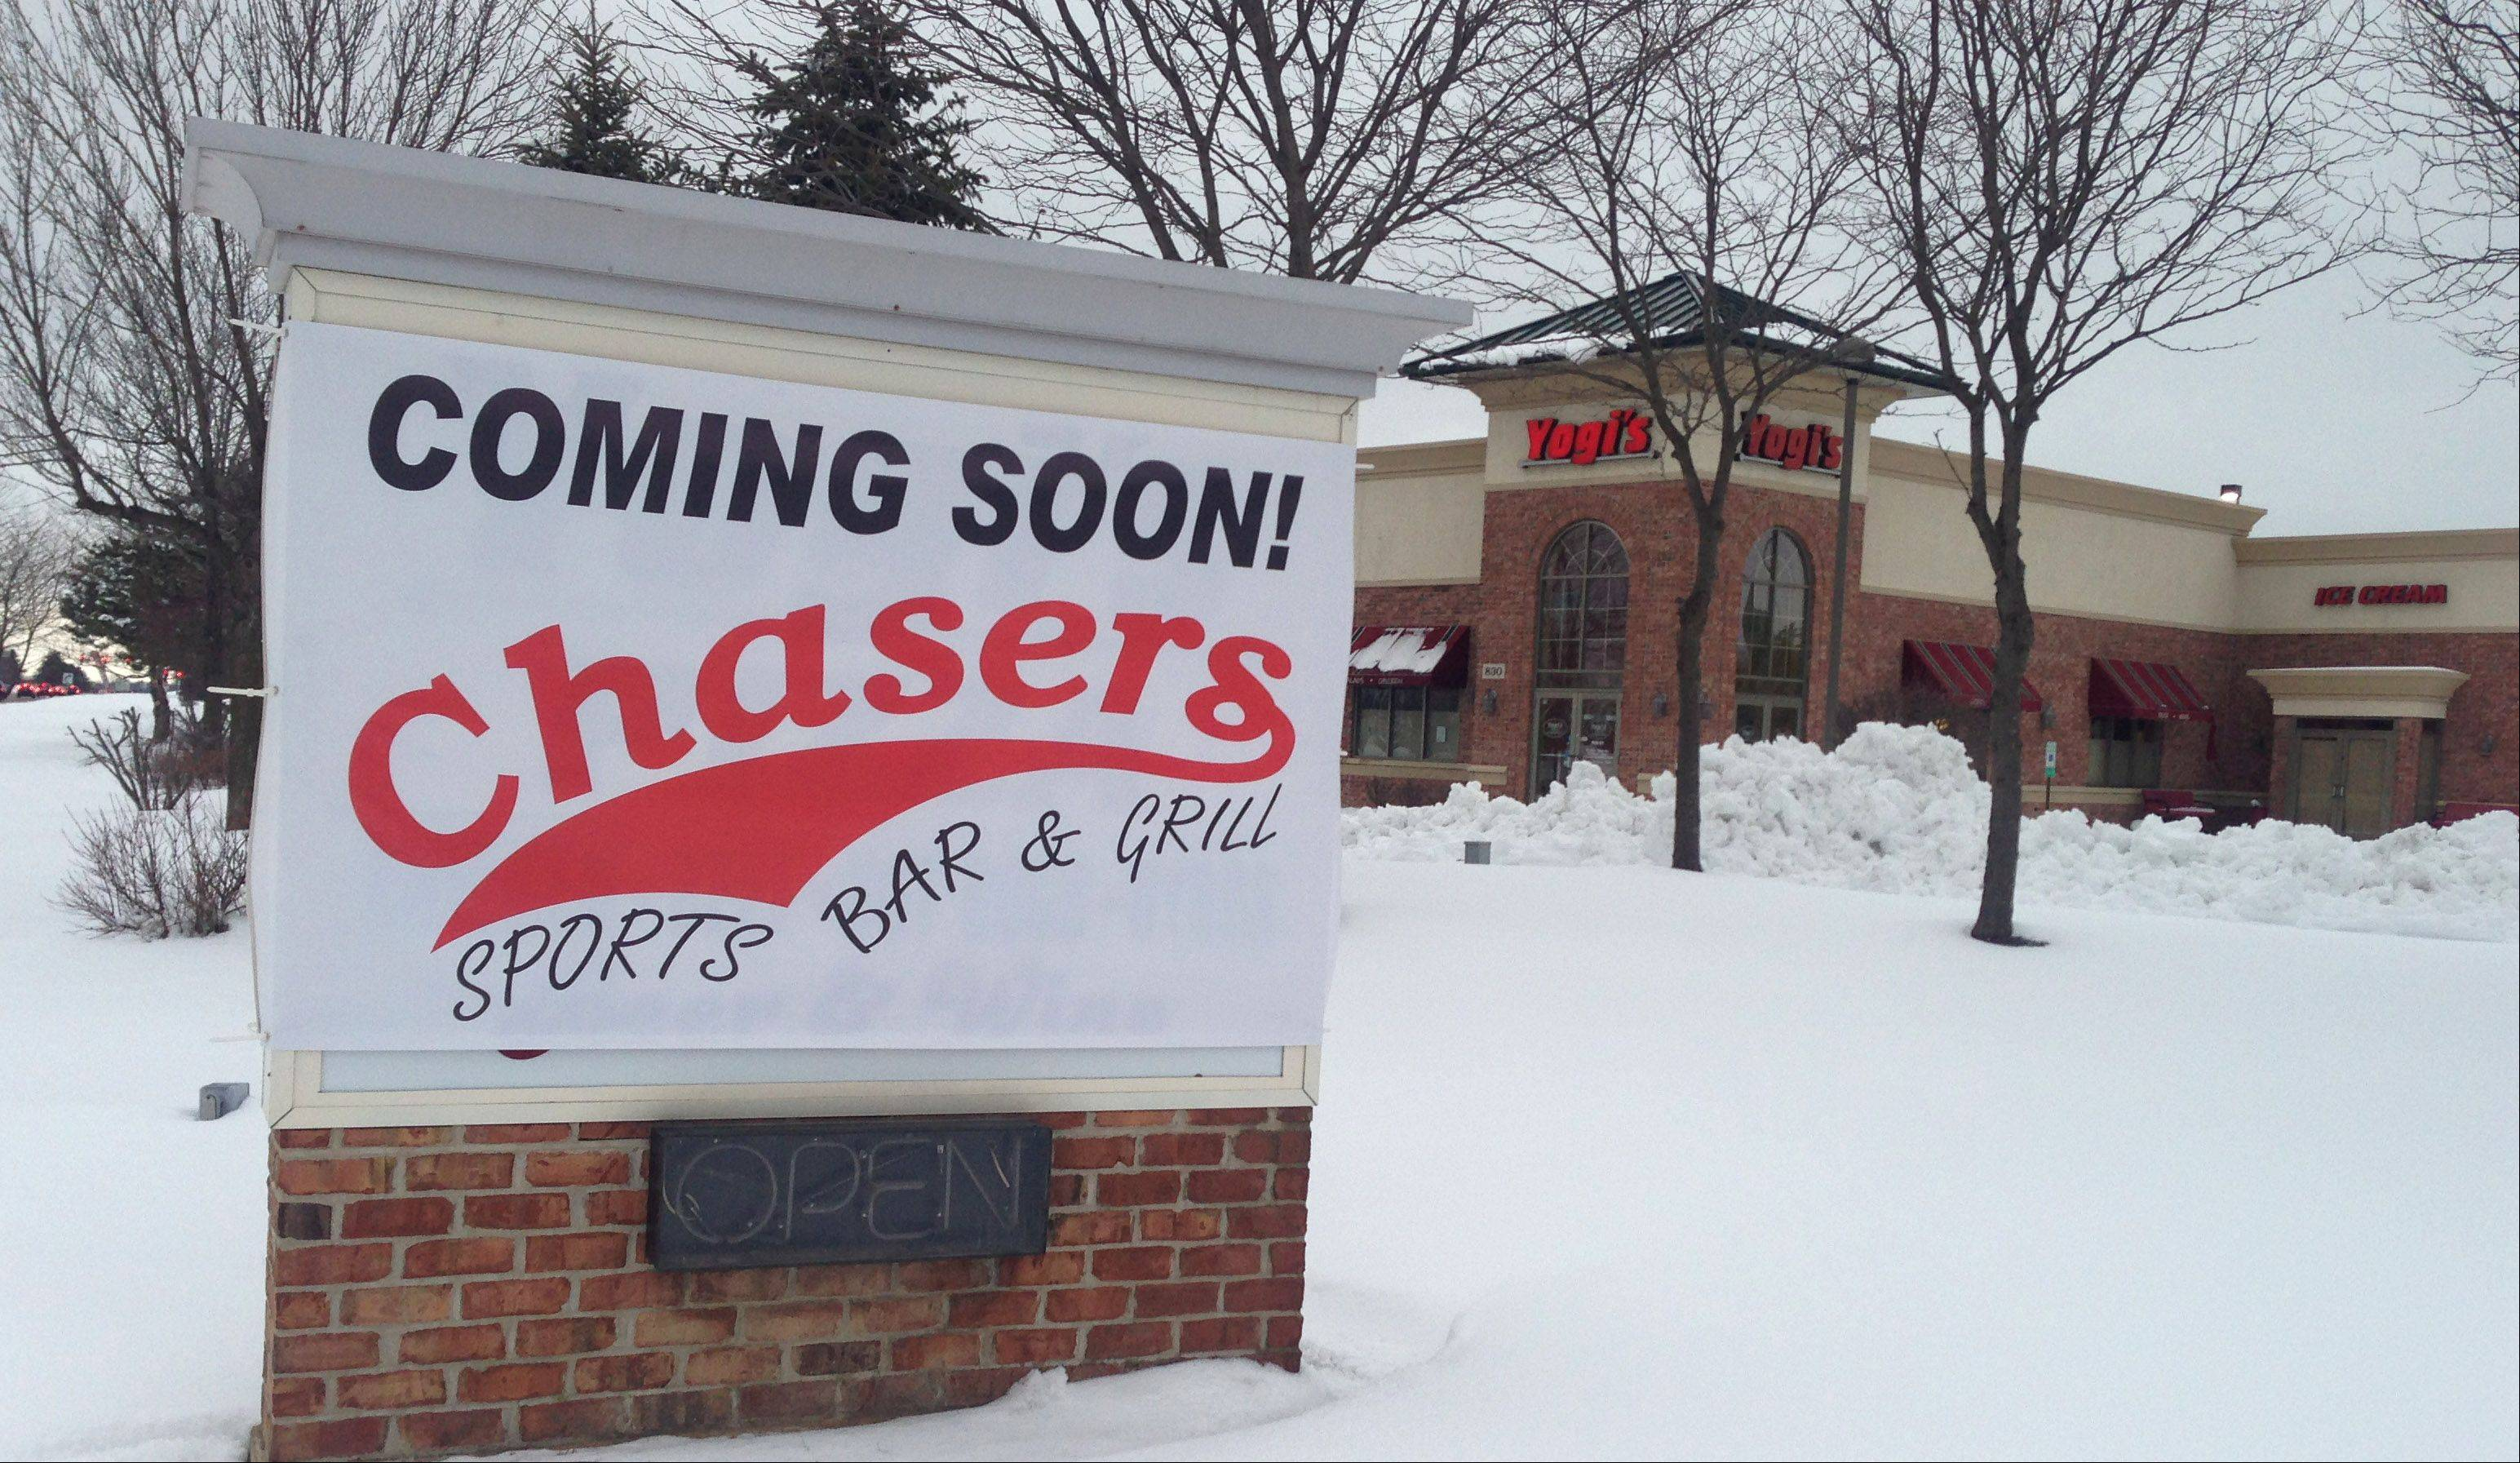 Chasers to replace Yogi's in Lake Zurich